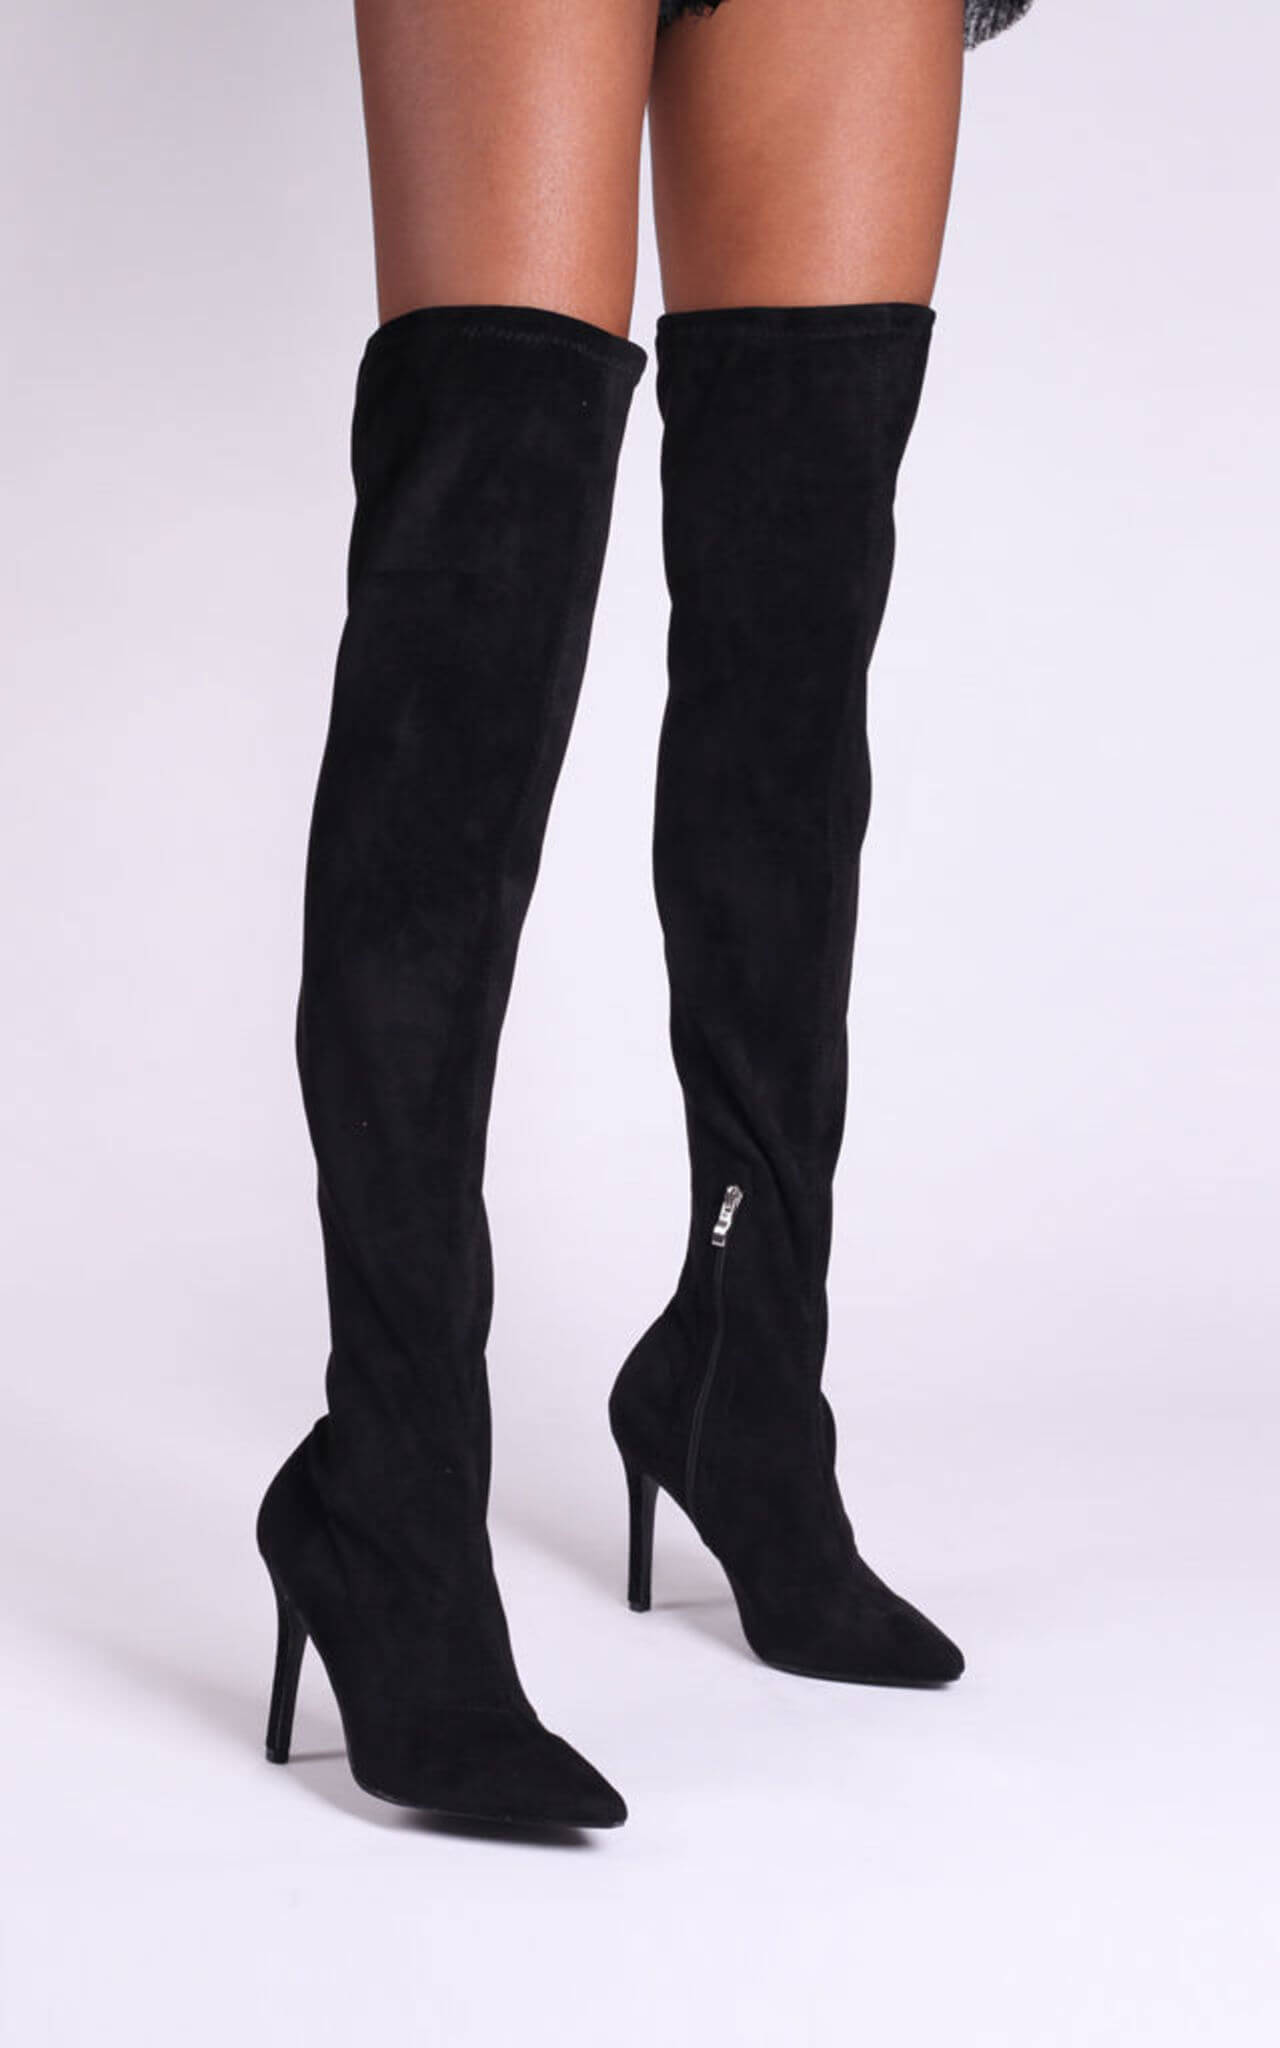 Model wears boots with pointed toe and stiletto heel in black